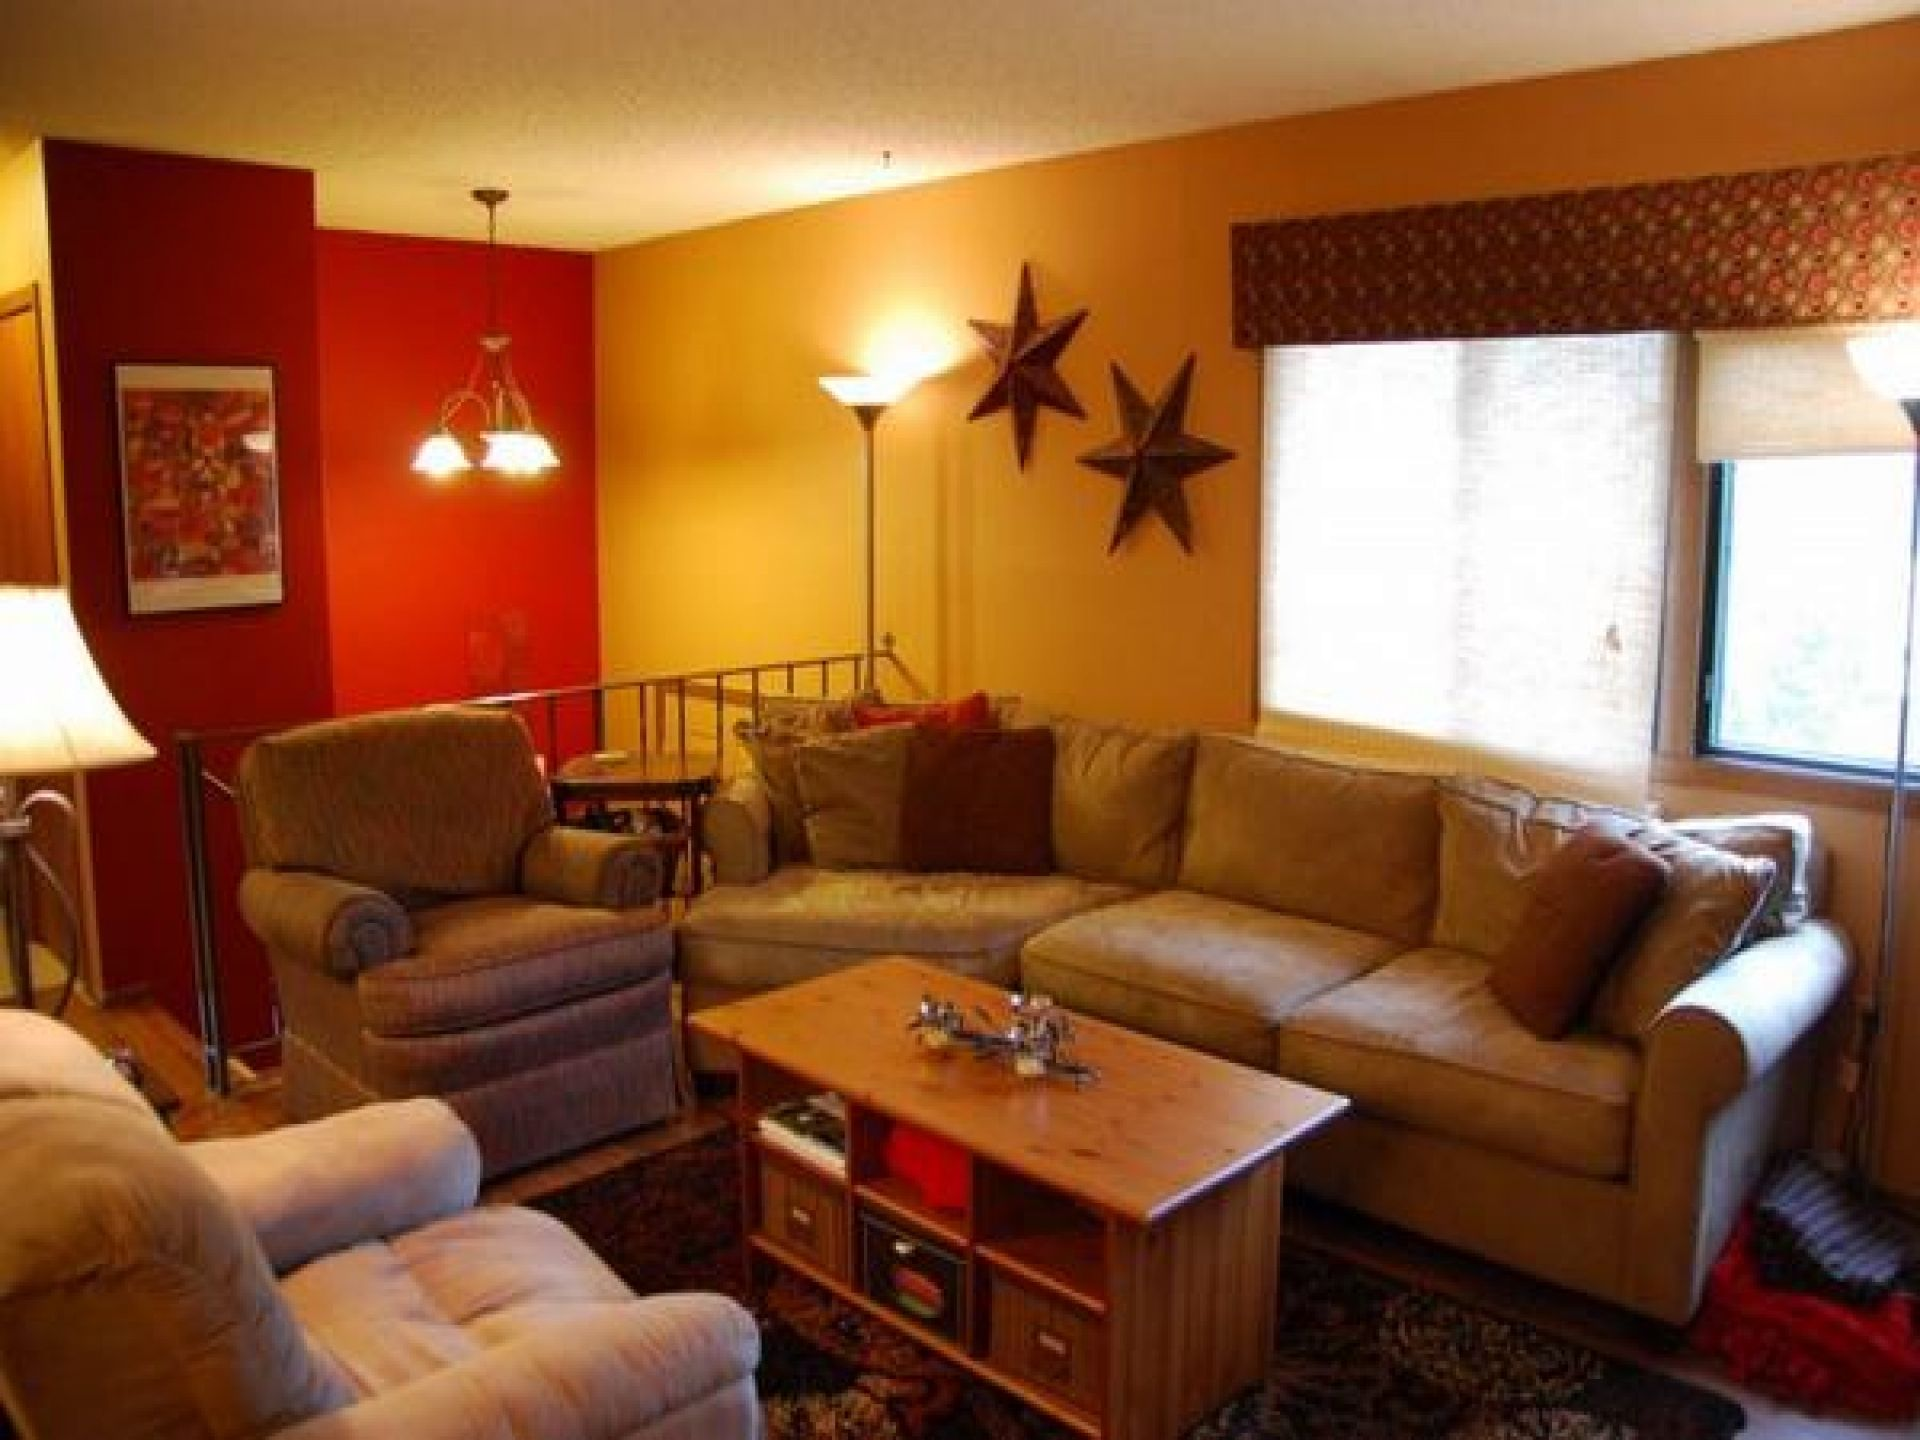 Red Living Room: Ideas Elegant Tan Living Couch Feat Red And Yellow Wall